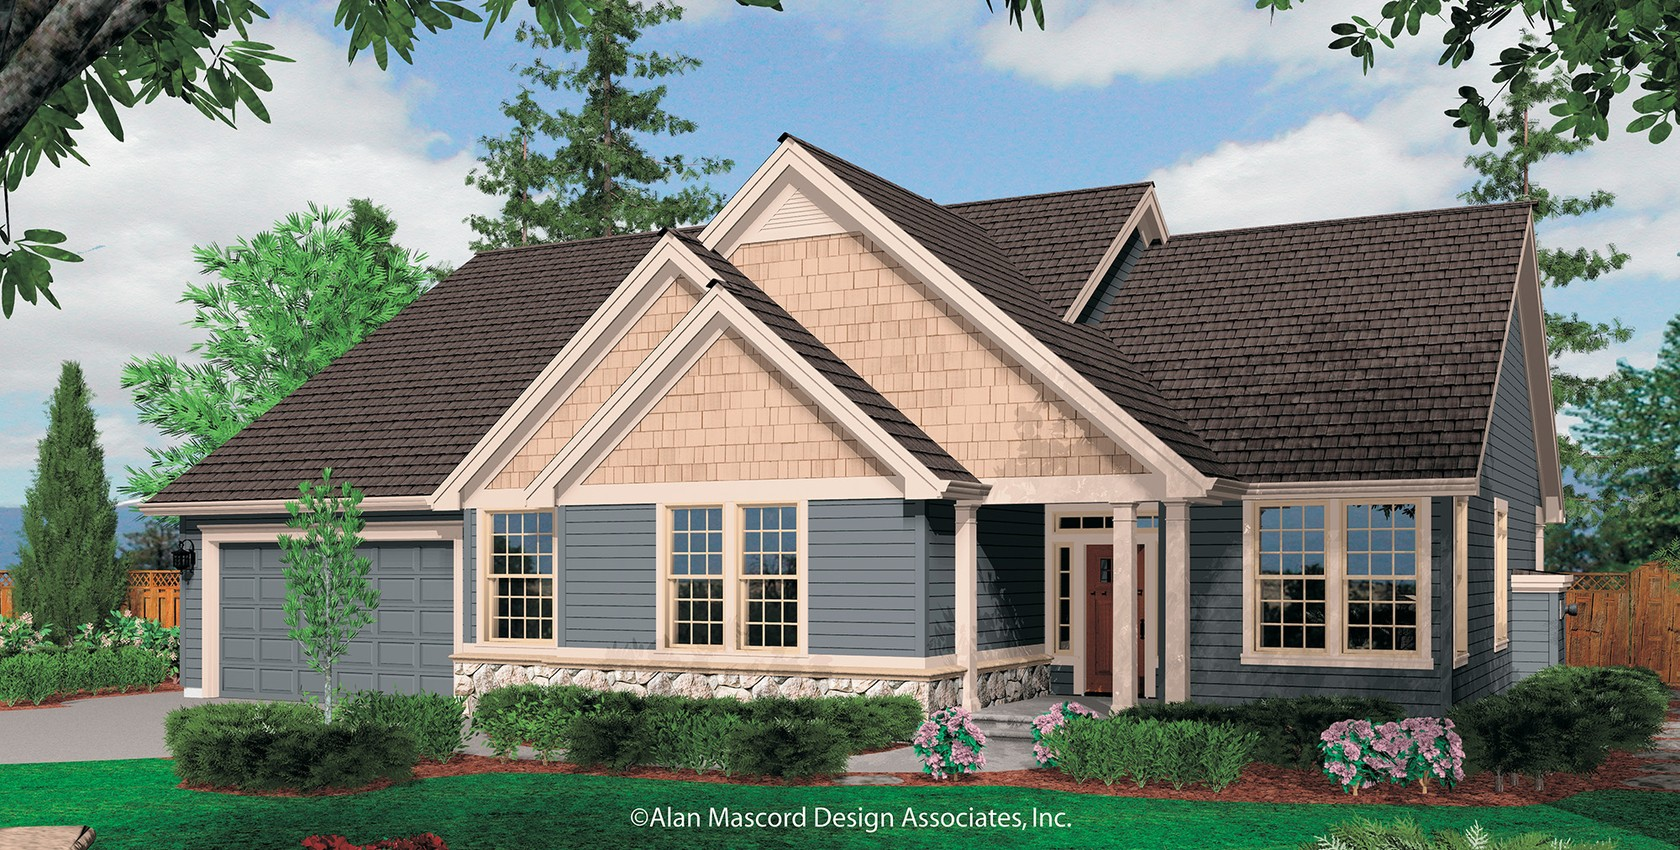 Mascord house plan 1231f the saratoga for Mascord house plans